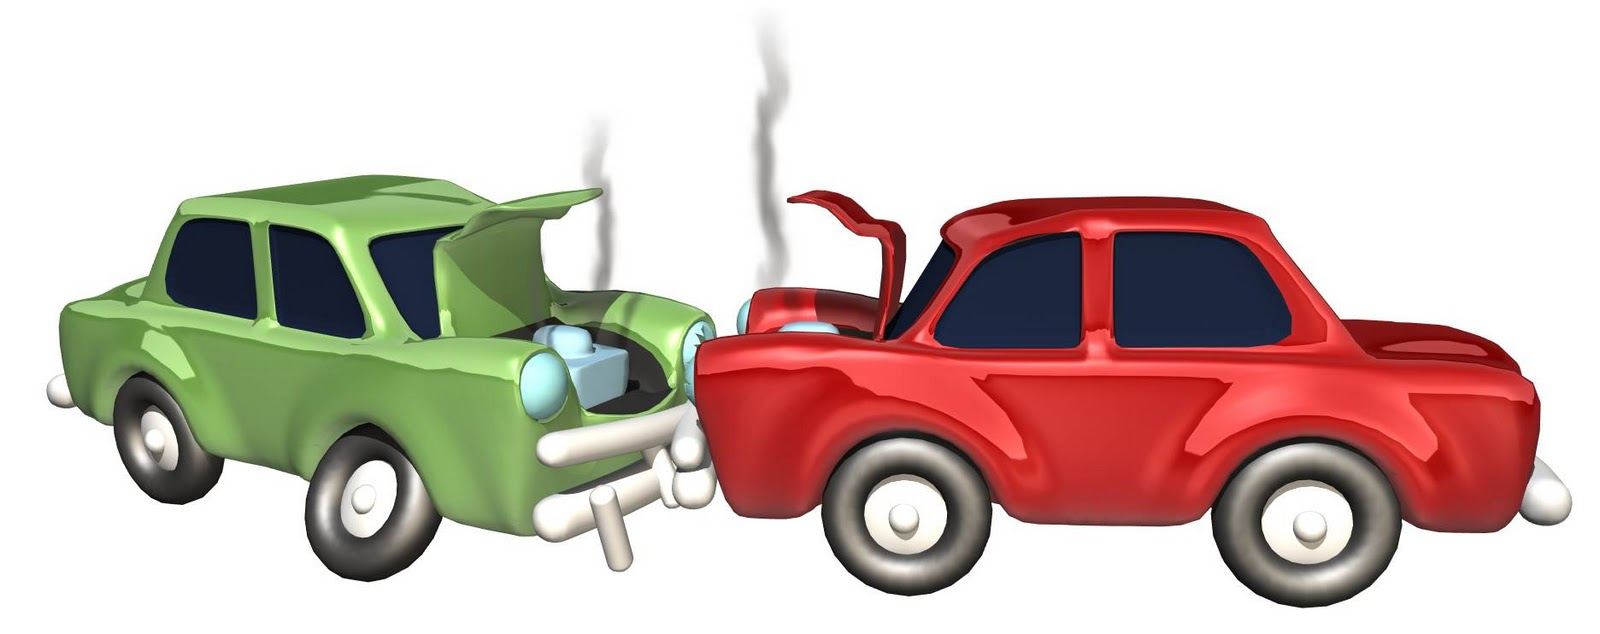 Crash clipart car collision And towing Clip Clipart car